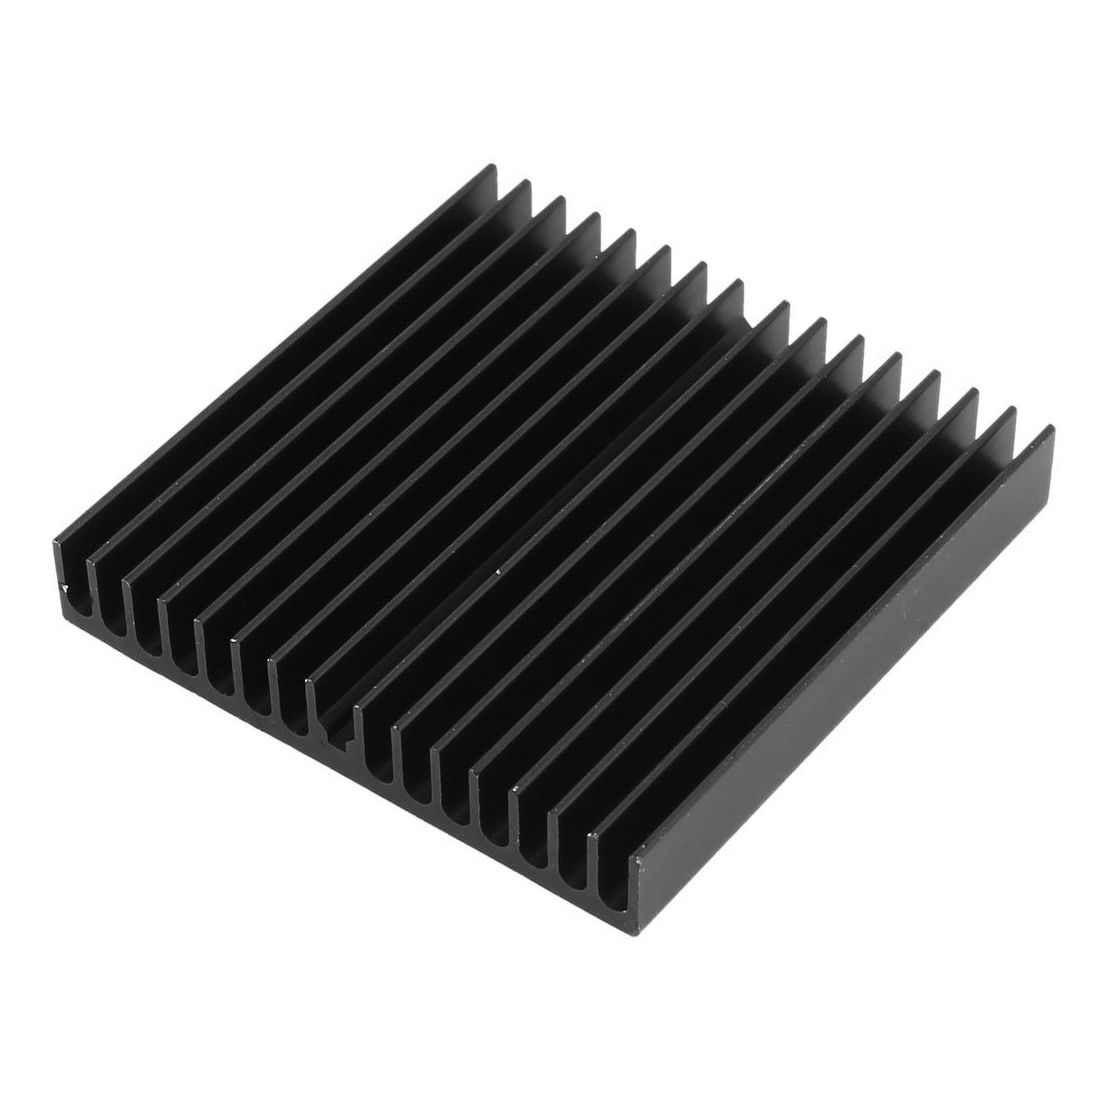 1 pcs Aluminum Radiator Heat Sink Heatsink 60mm x 60mm x 10mm Black hight quality winter beanies women plain warm soft beanie skull knit cap hats solid color hat for men knitted touca gorro caps